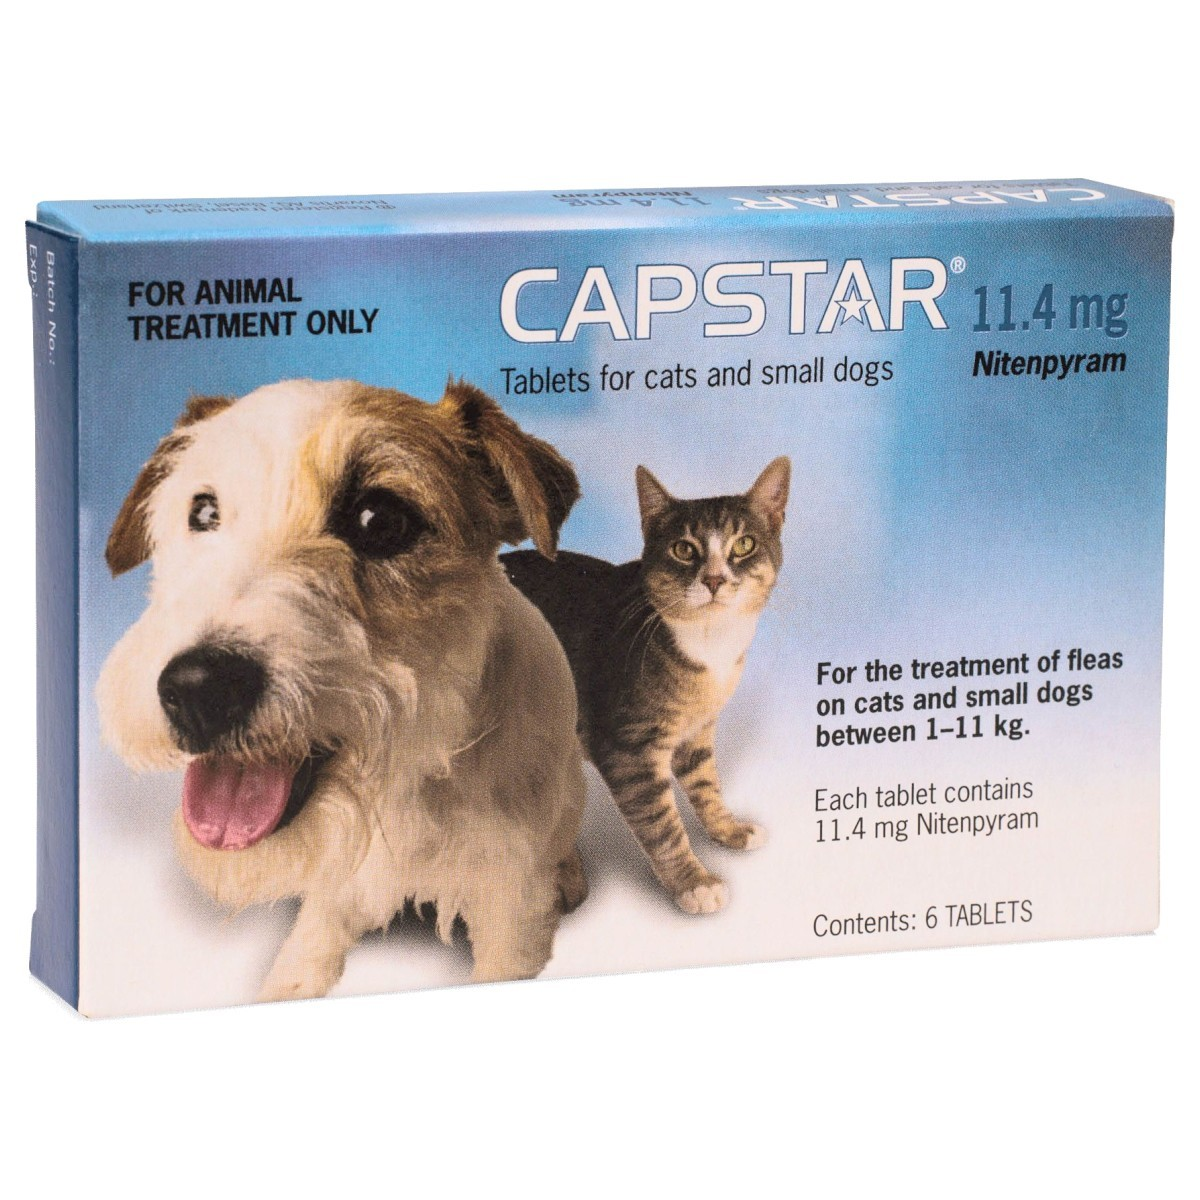 Capstar Flea Tablets For Small Dogs And Cats Pack Of 6 From 13 19